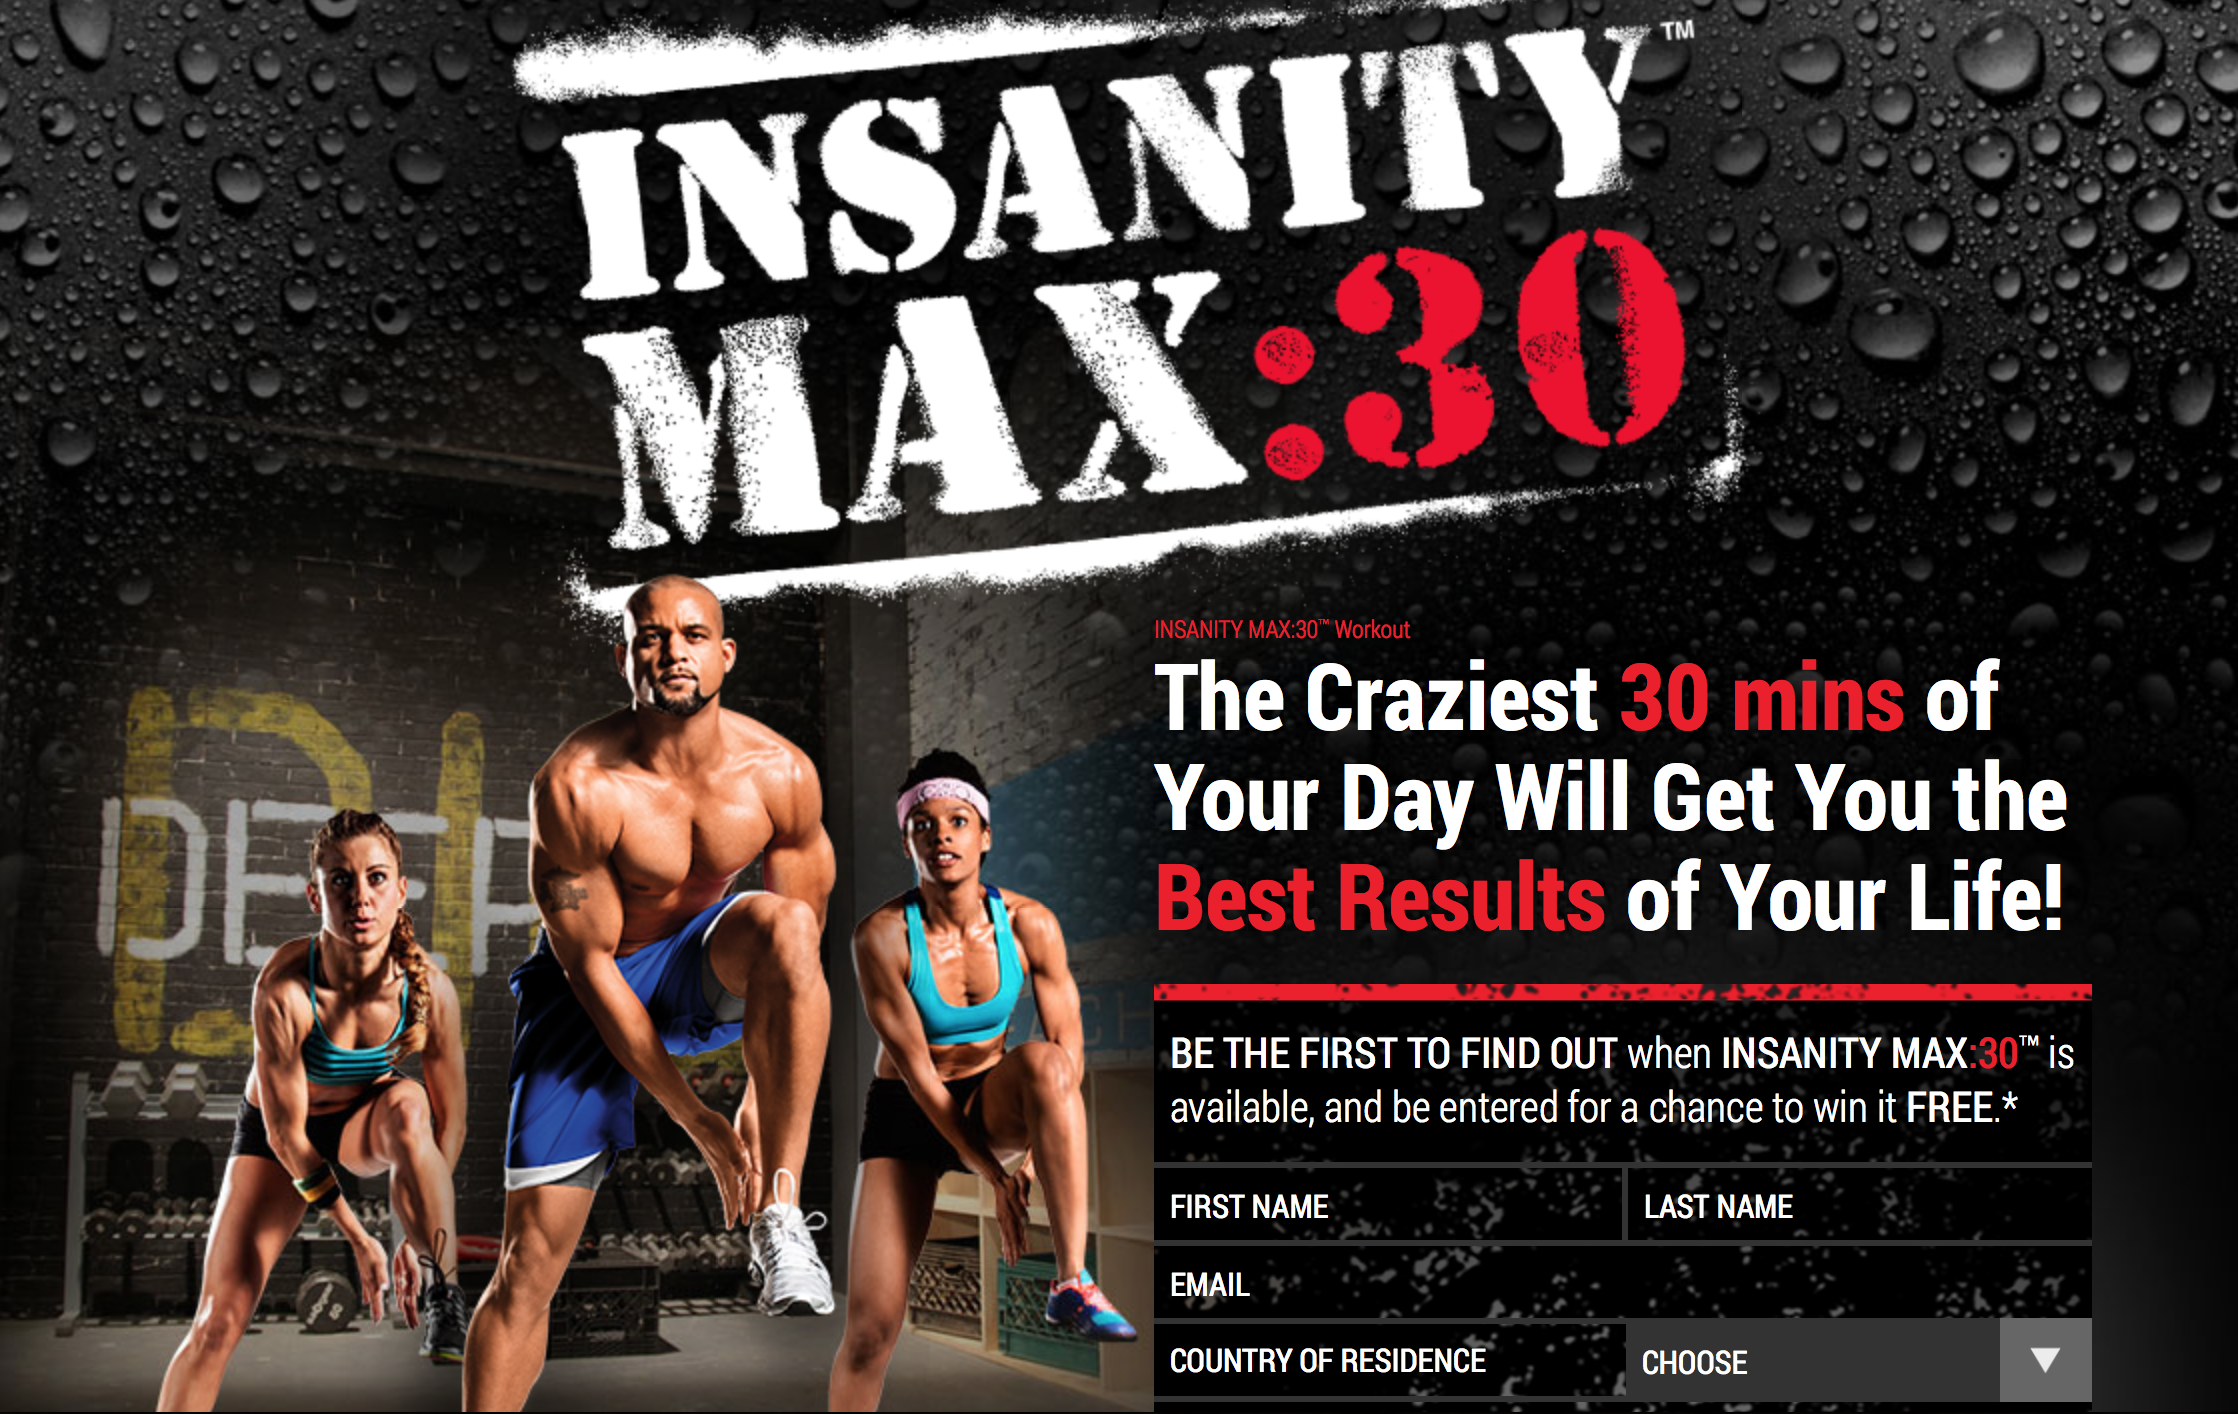 The Difference Between Insanity and Insanity Max 30